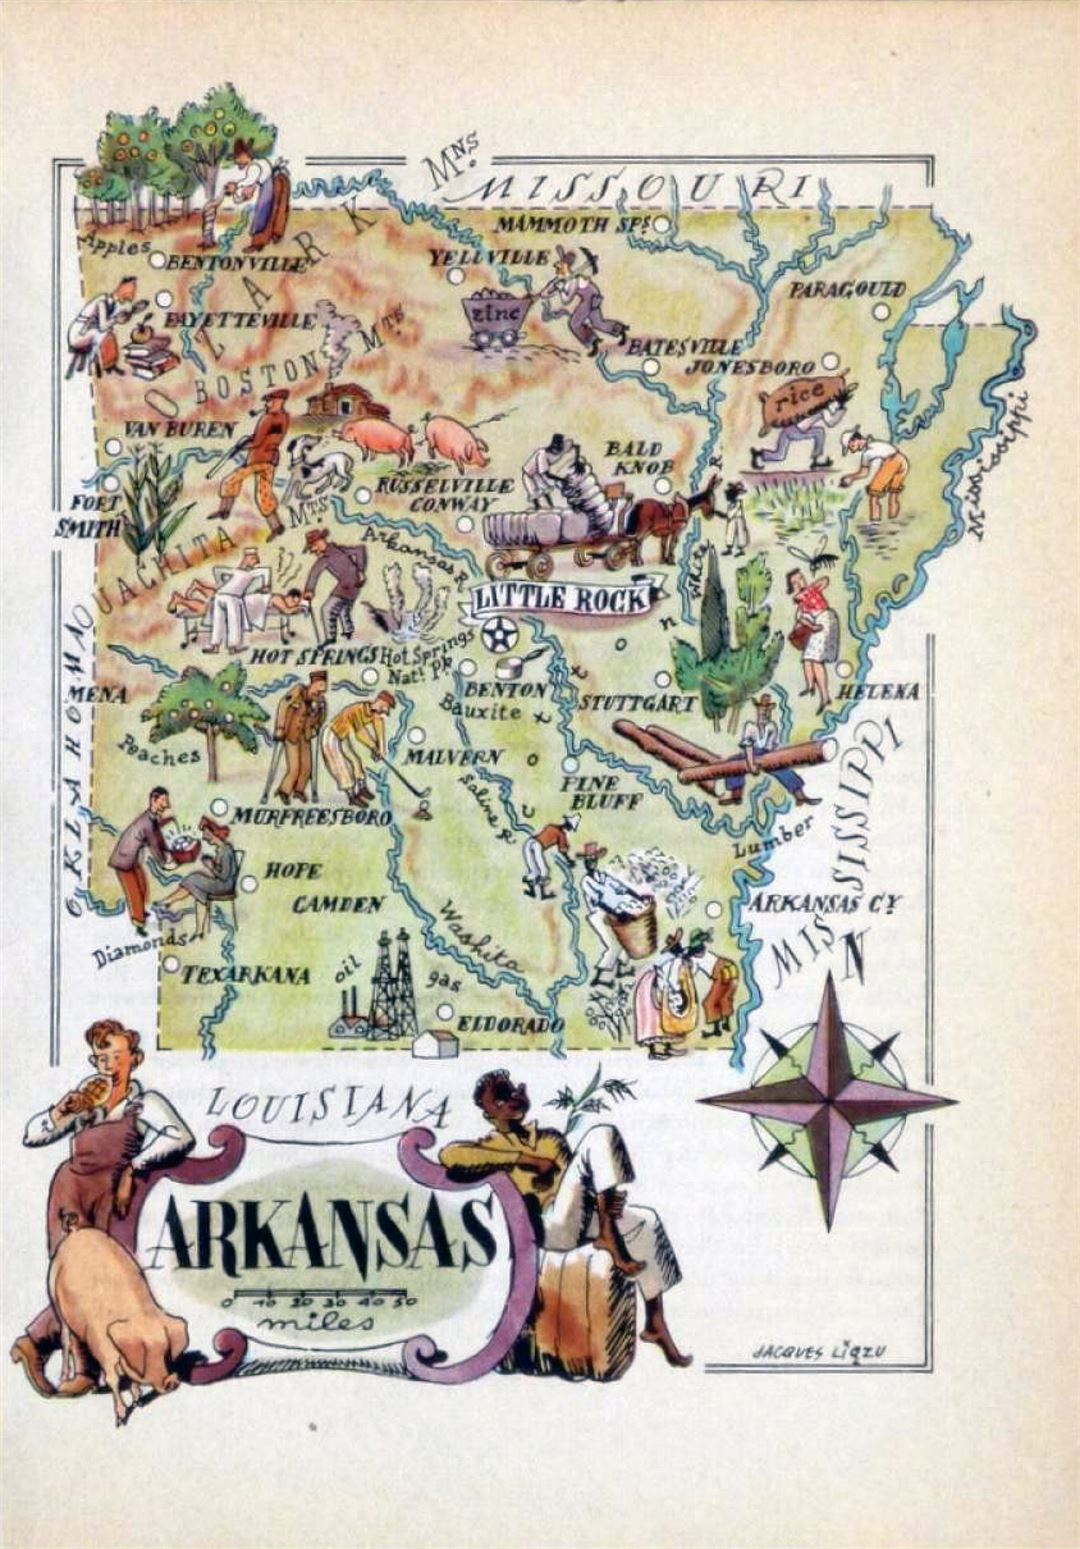 Old illustrated travel map of Arkansas state - 1946